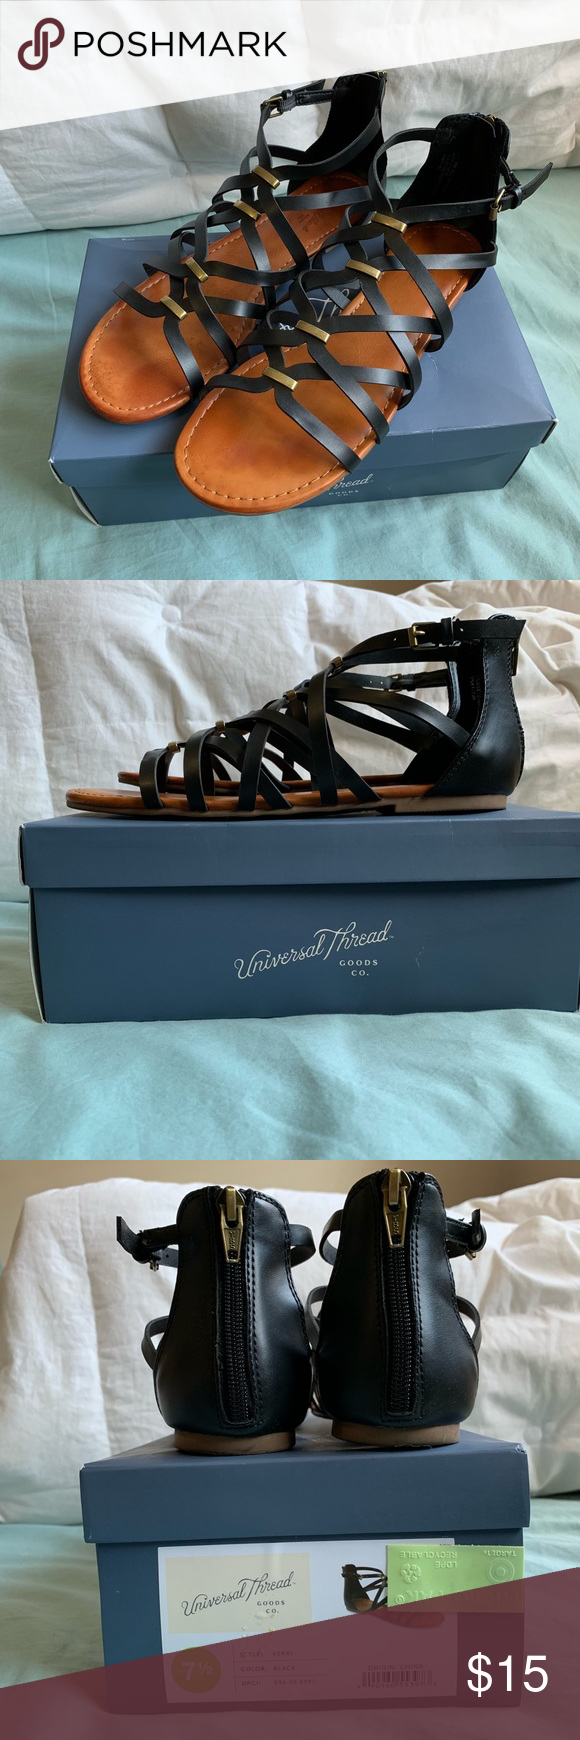 3b1232e77ef Black Universal thread gladiator sandals - Target Worn one day. They didn t  fit me. Super cute